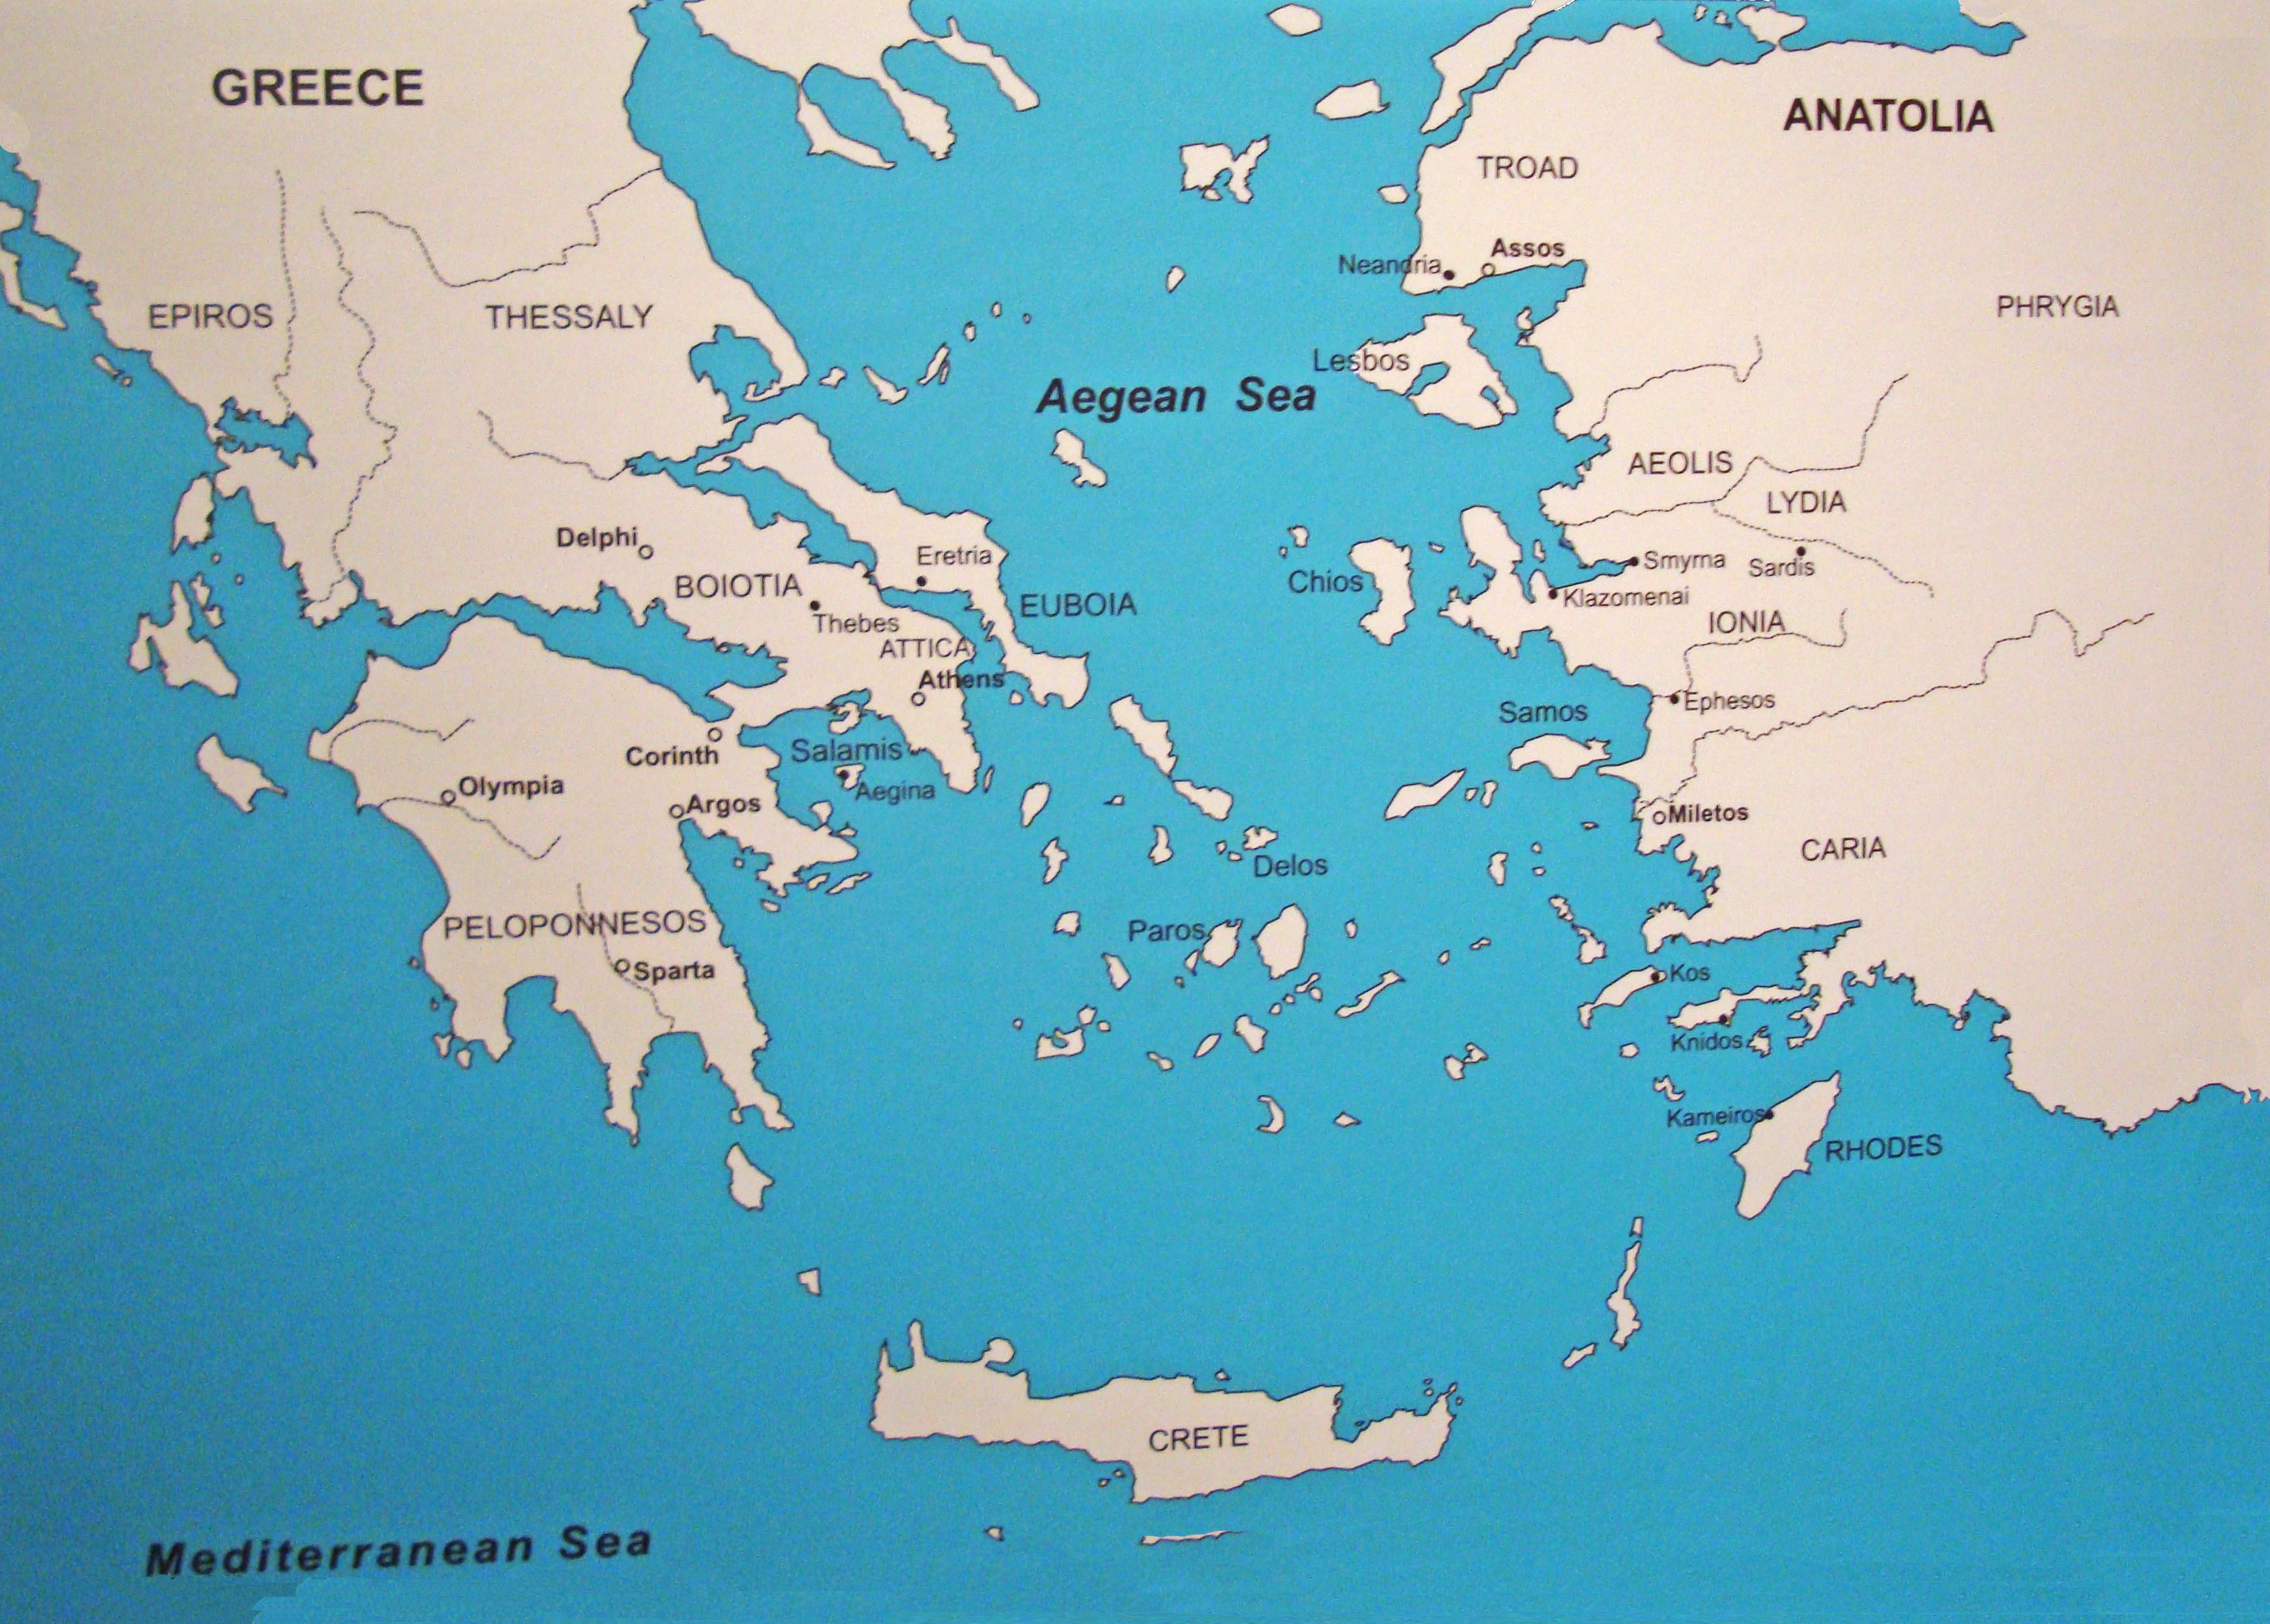 Ancient Greece Maps For Students